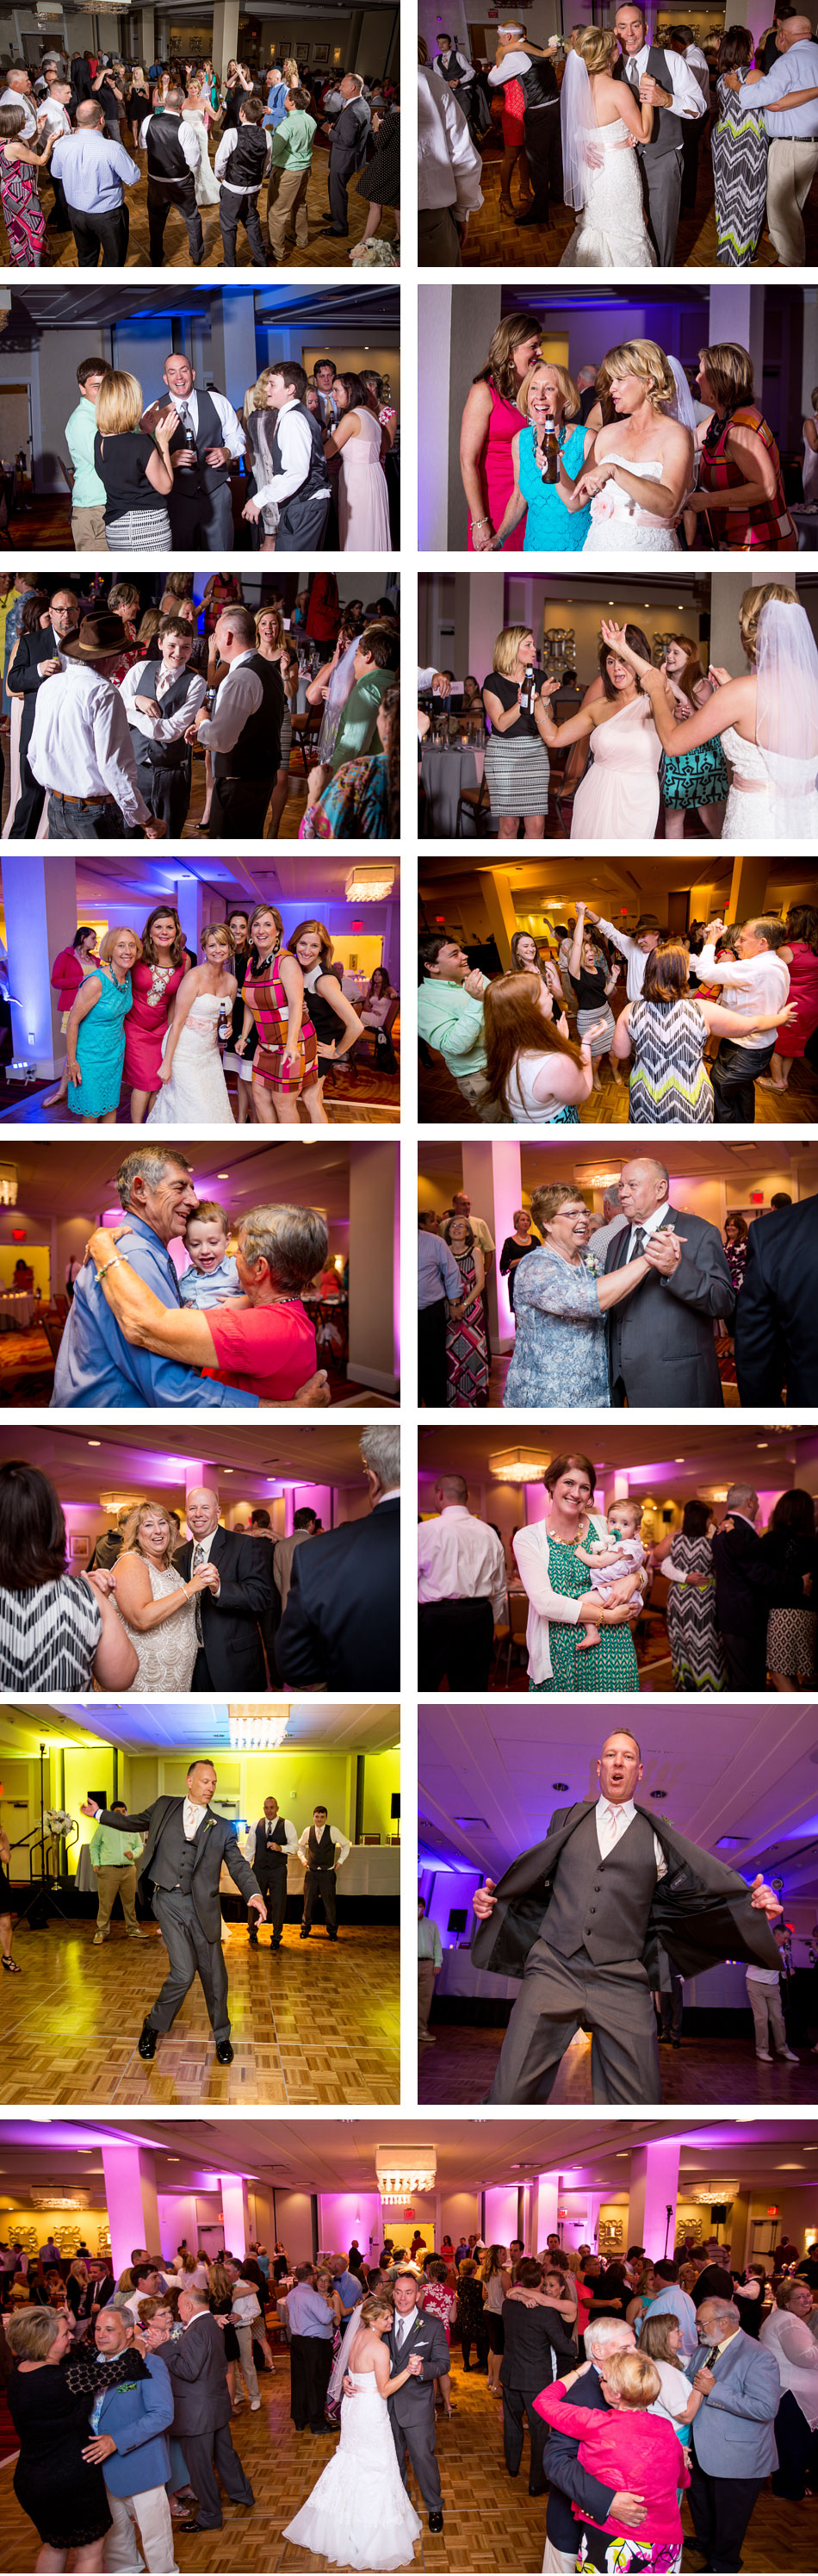 Marriot East Dance Party Wedding